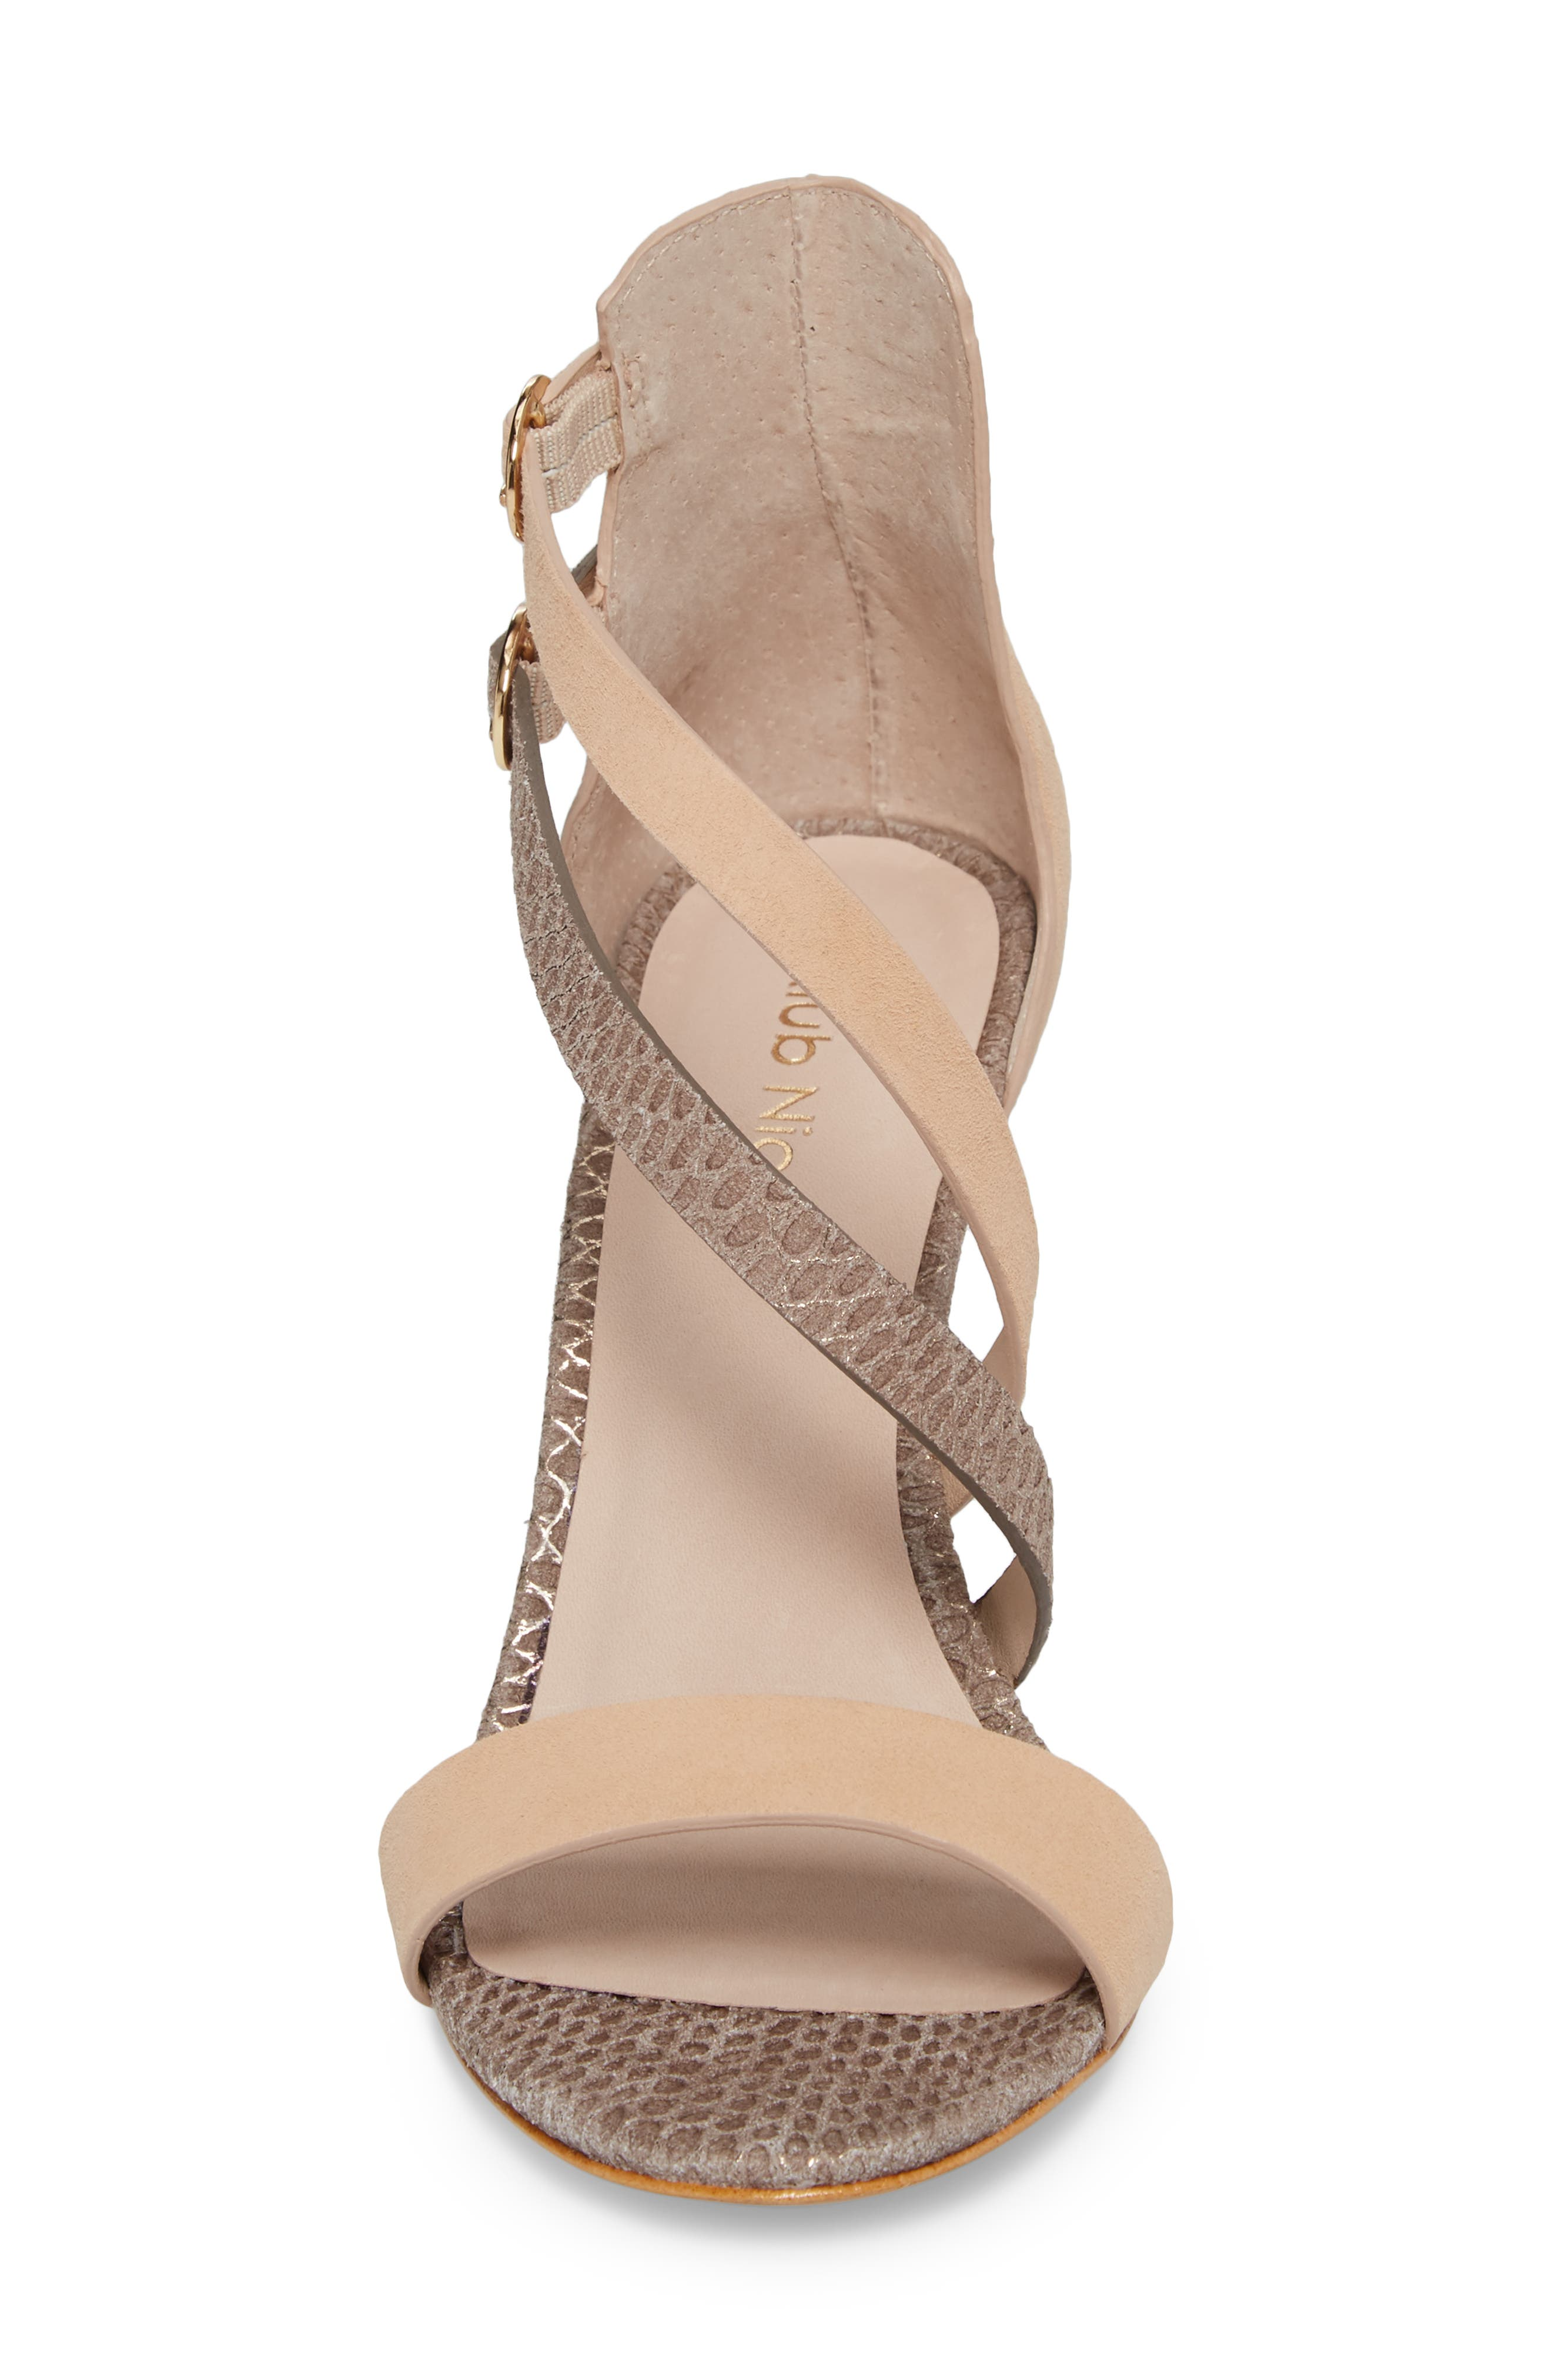 Arden Sandal,                             Alternate thumbnail 4, color,                             PEONY/ PEWTER EMBOSSED LEATHER